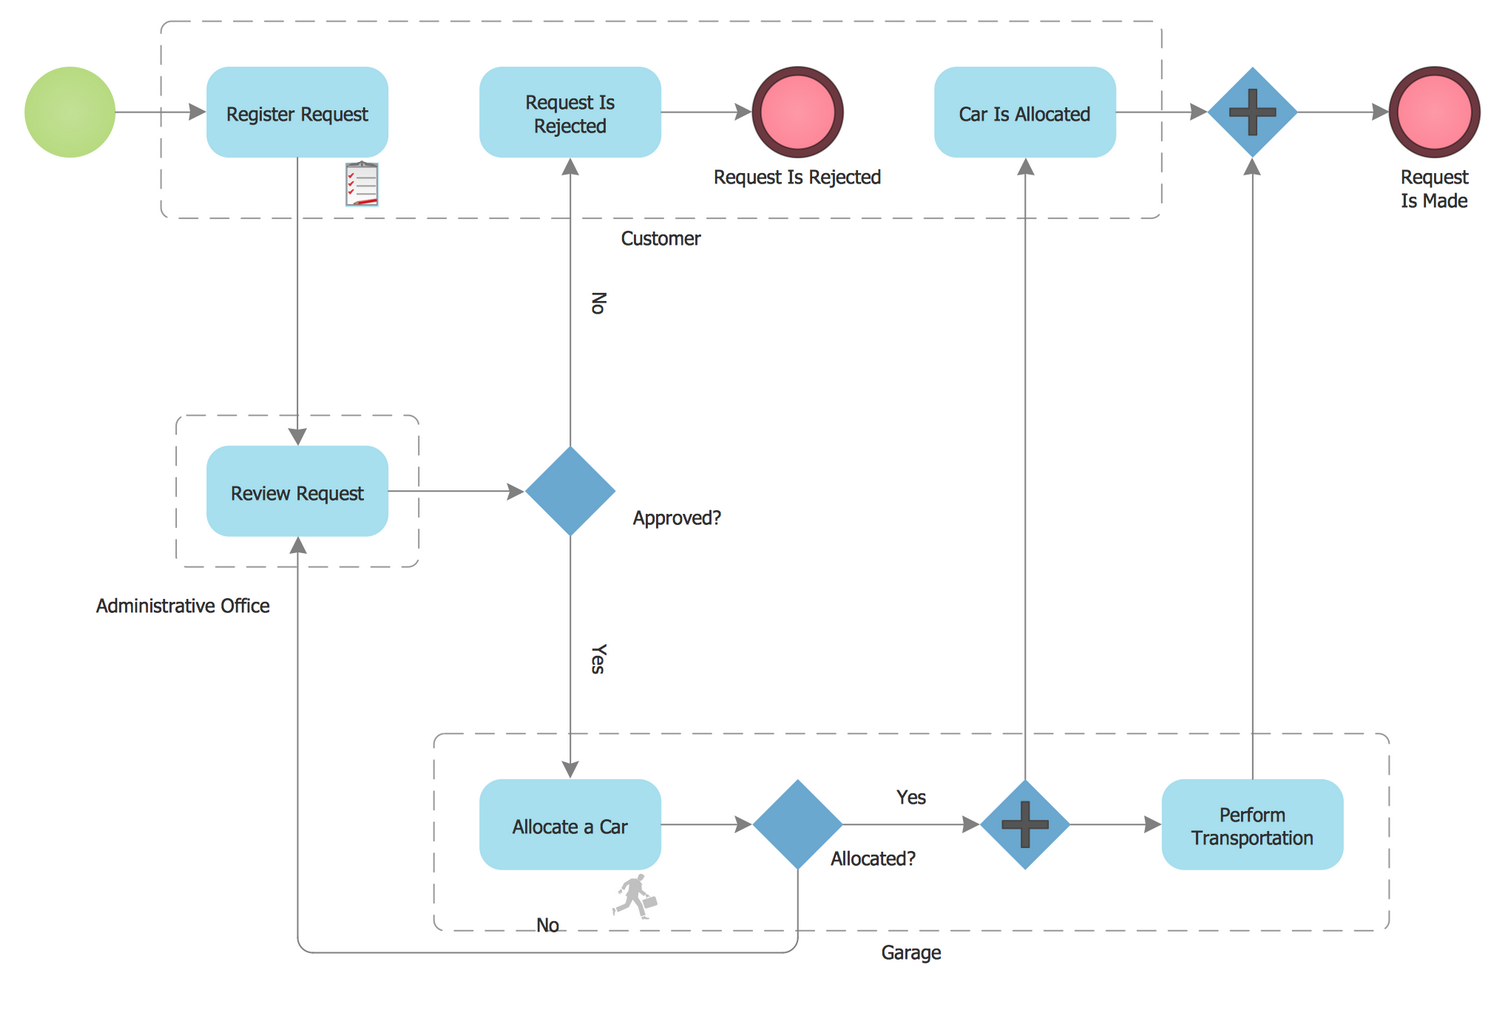 Taxi Service Order Procedure BPMN 1.2 Diagram